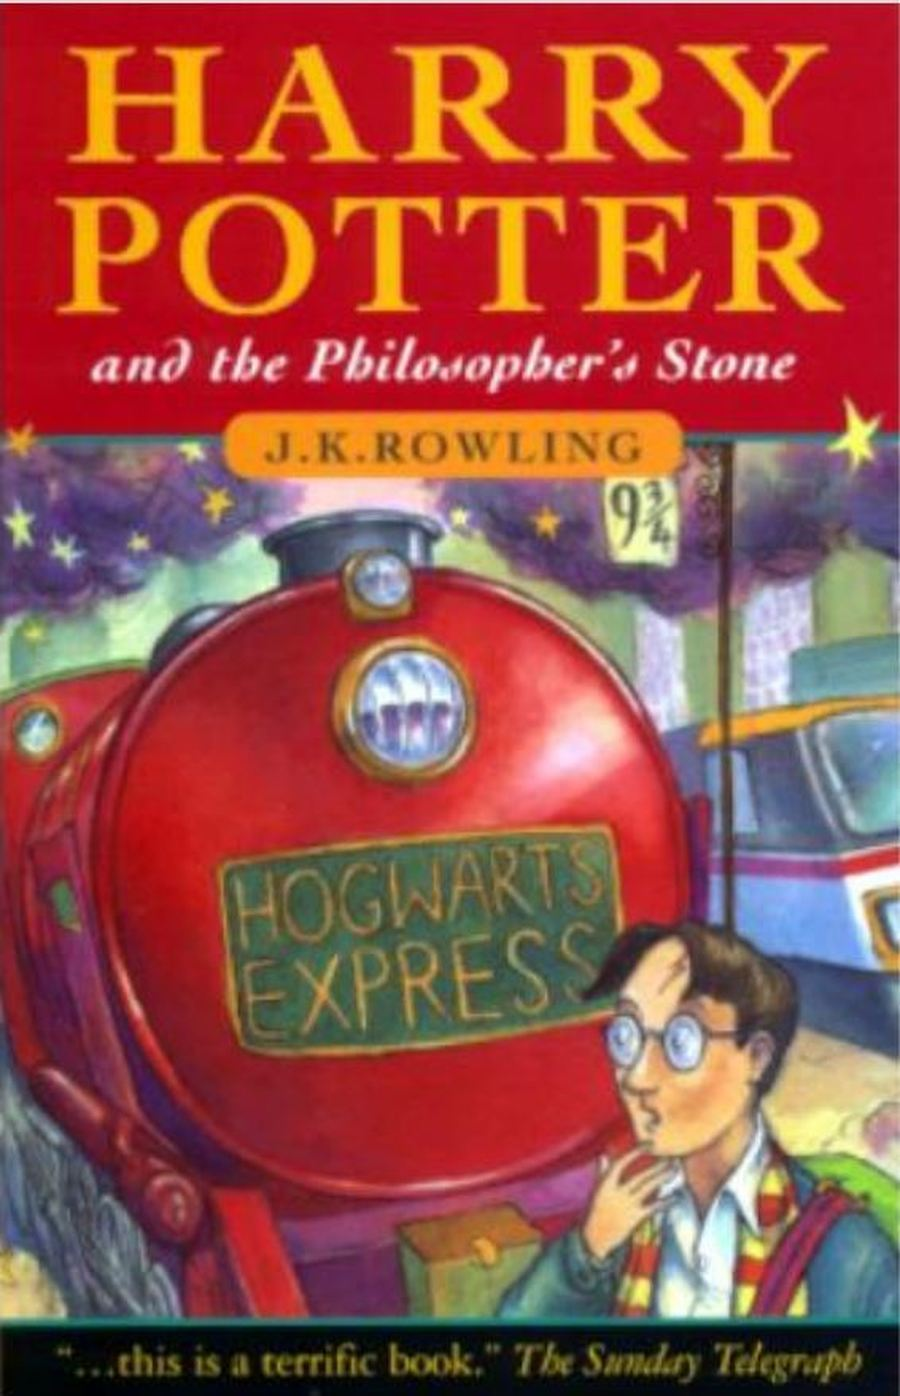 Harry Potter and the Philosopher's Stone - Chapter 1